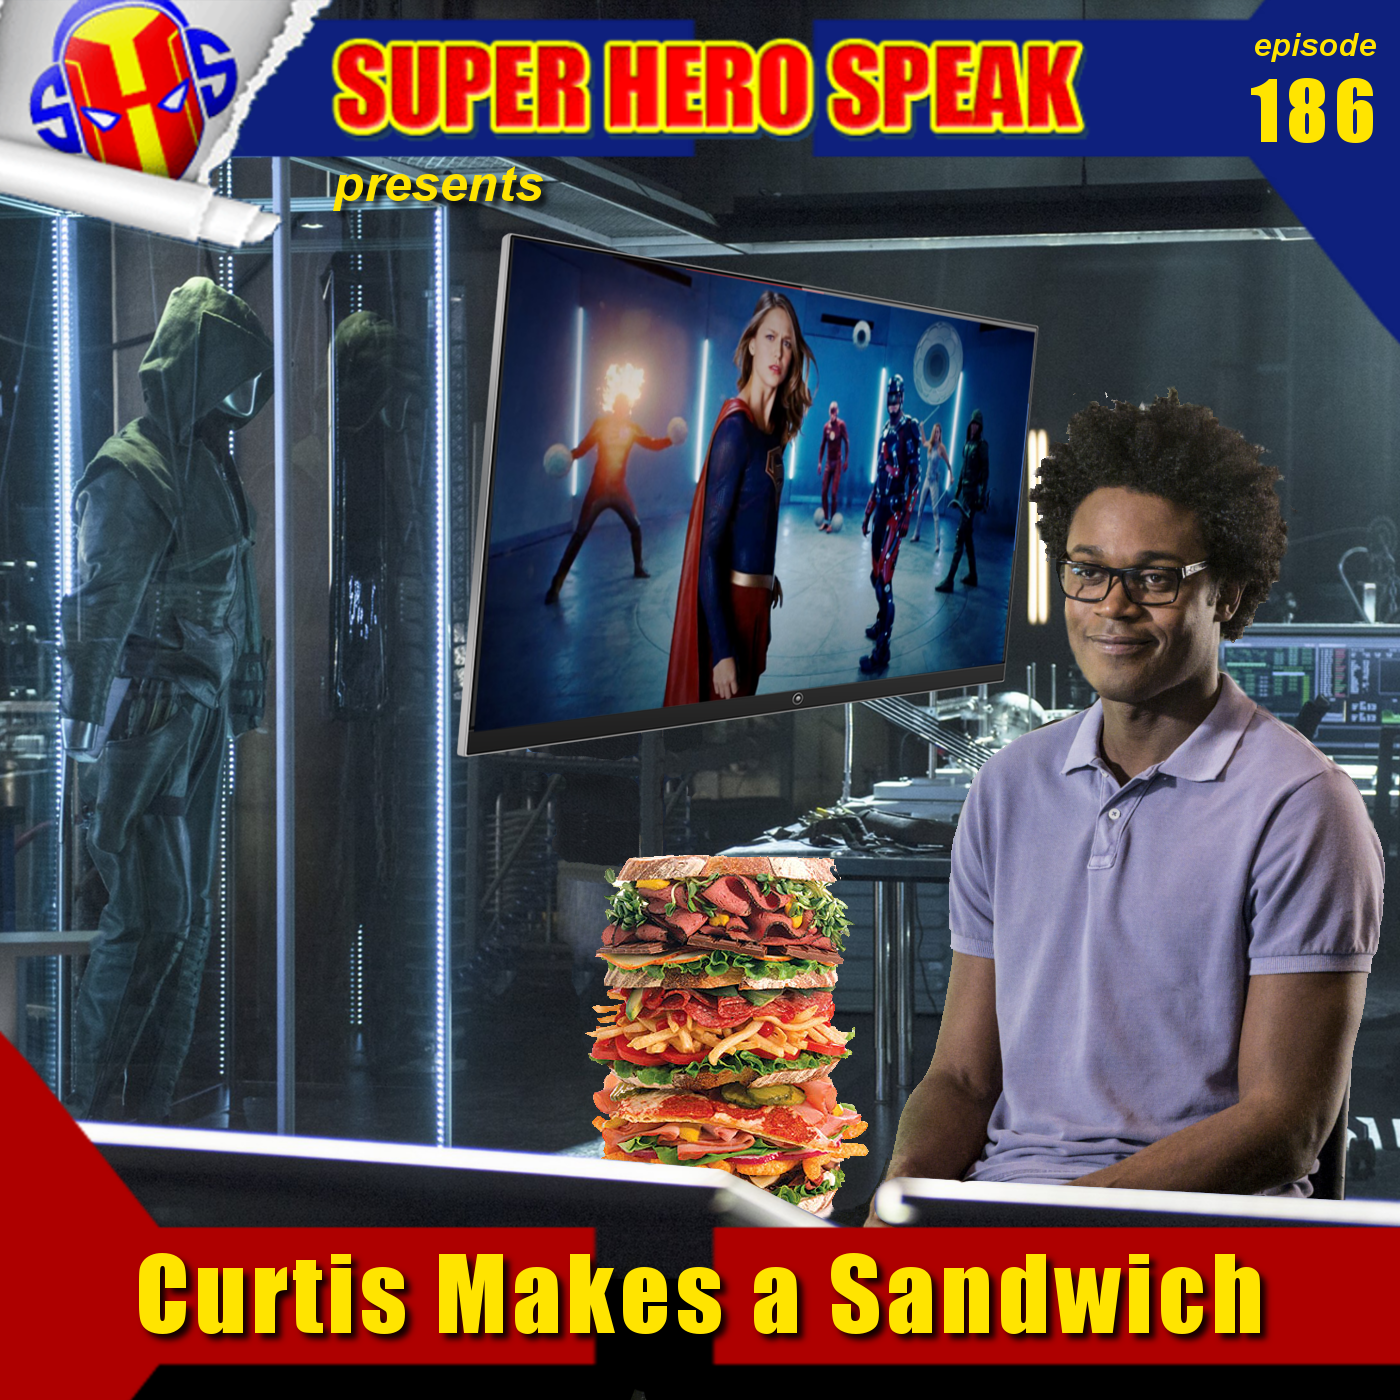 #186: Curtis Makes a Sandwich